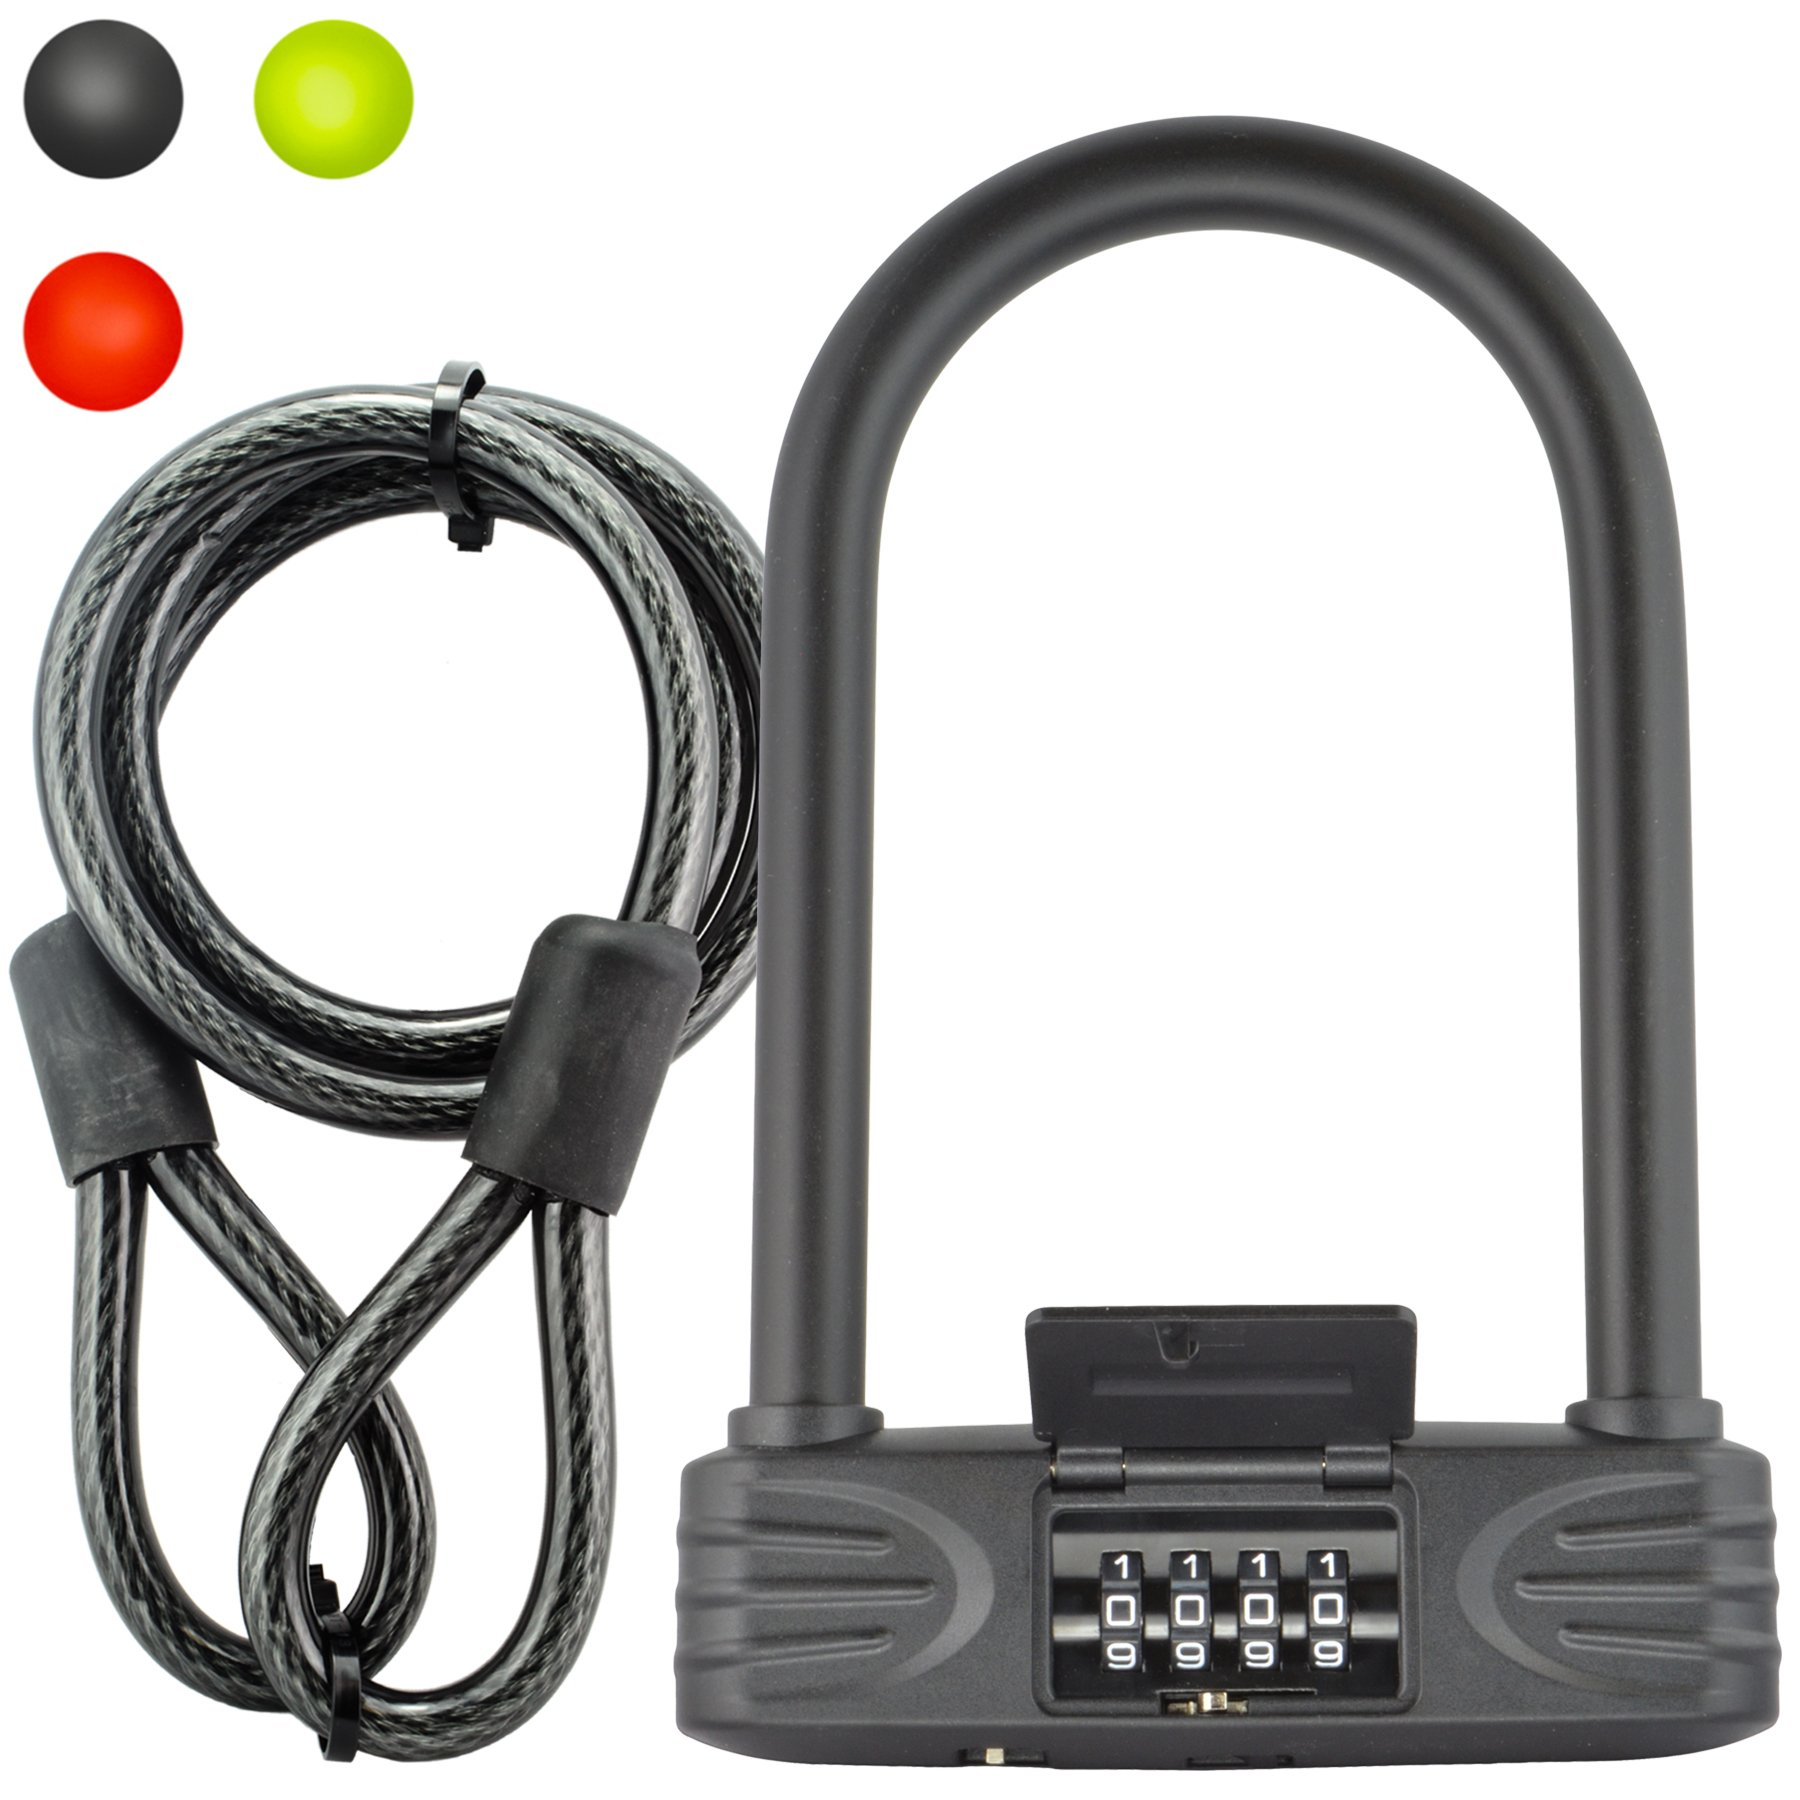 Lumintrail 16mm Heavy Duty 4-Digit Bicycle Bike Combination U-Lock with 4 ft Cable - Assorted Colors (Black) by Lumintrail